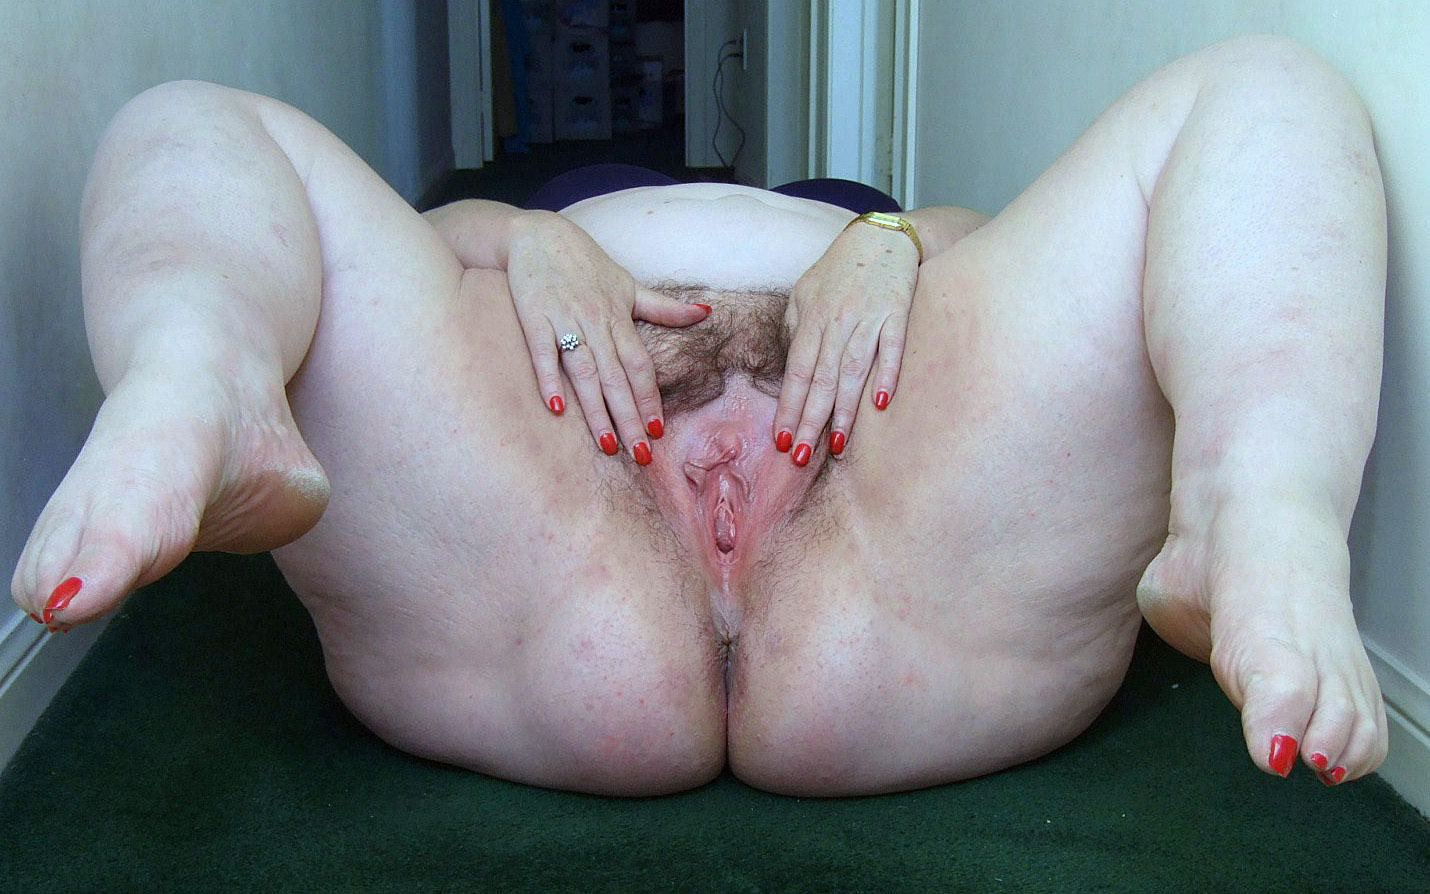 Fat ass pussy porn pictures 4